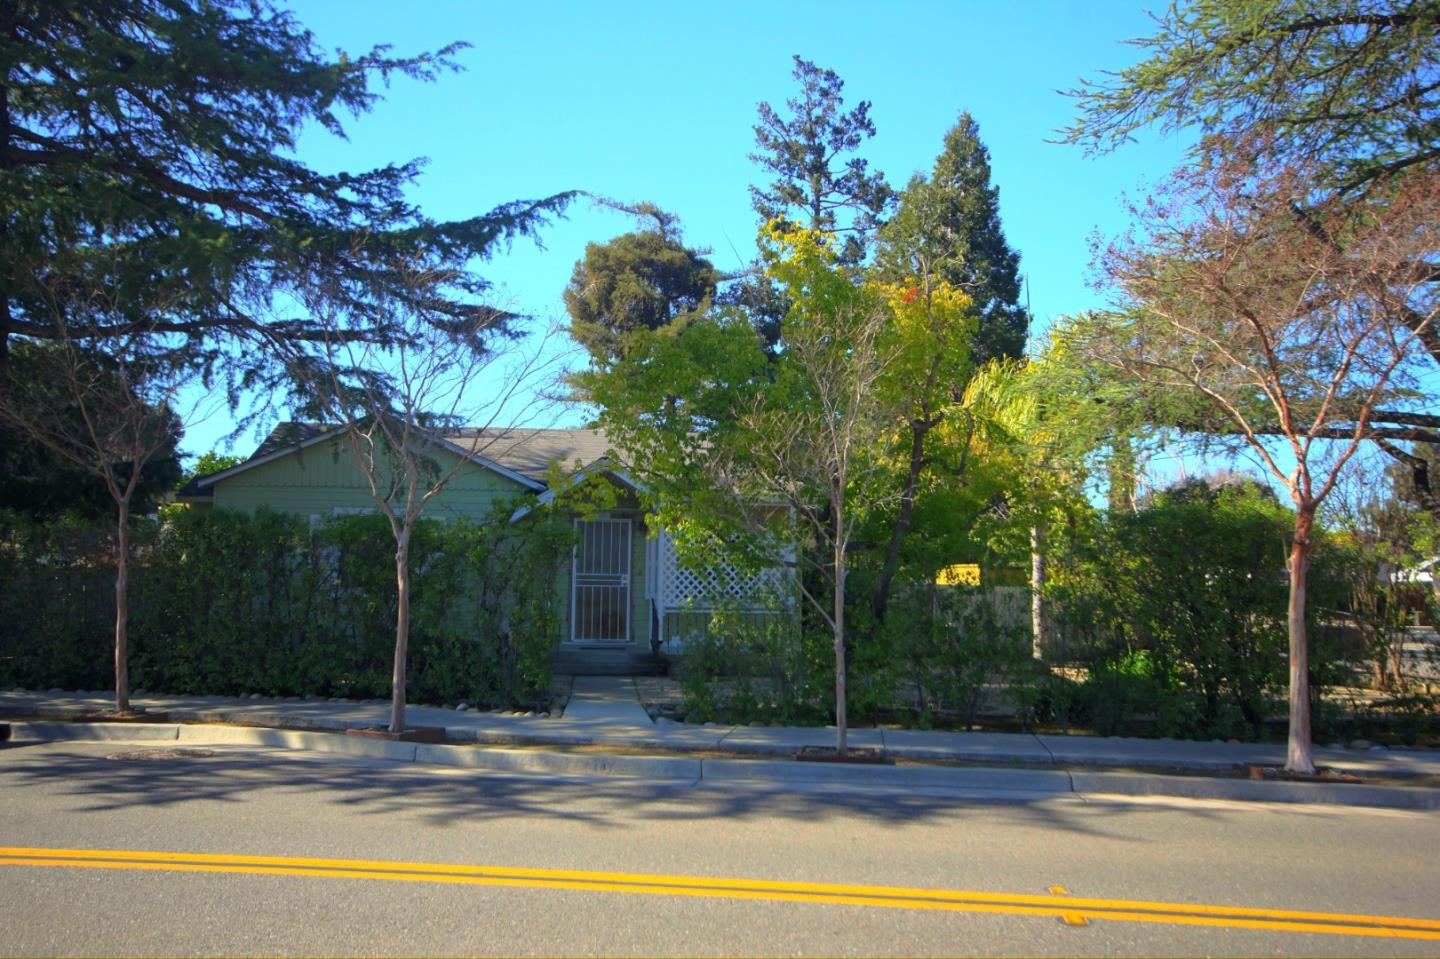 Single Family Home for Sale at 1113 S San Tomas Aquino Road 1113 S San Tomas Aquino Road Campbell, California 95008 United States